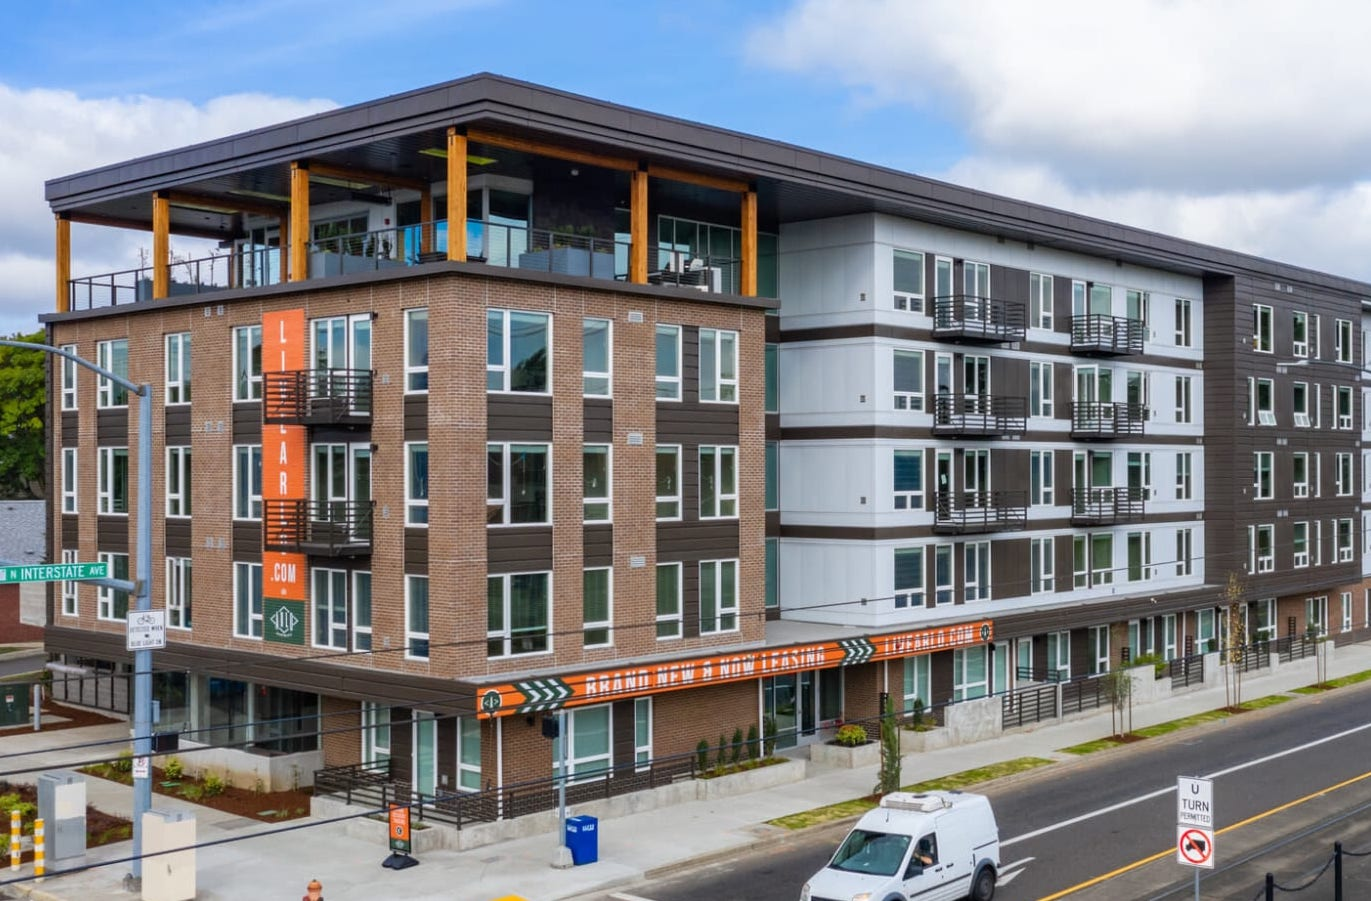 Mission Rock Residential Expands Northwest Presence With Management of 175-Unit Arlo Apartment Community in Portland, Oregon